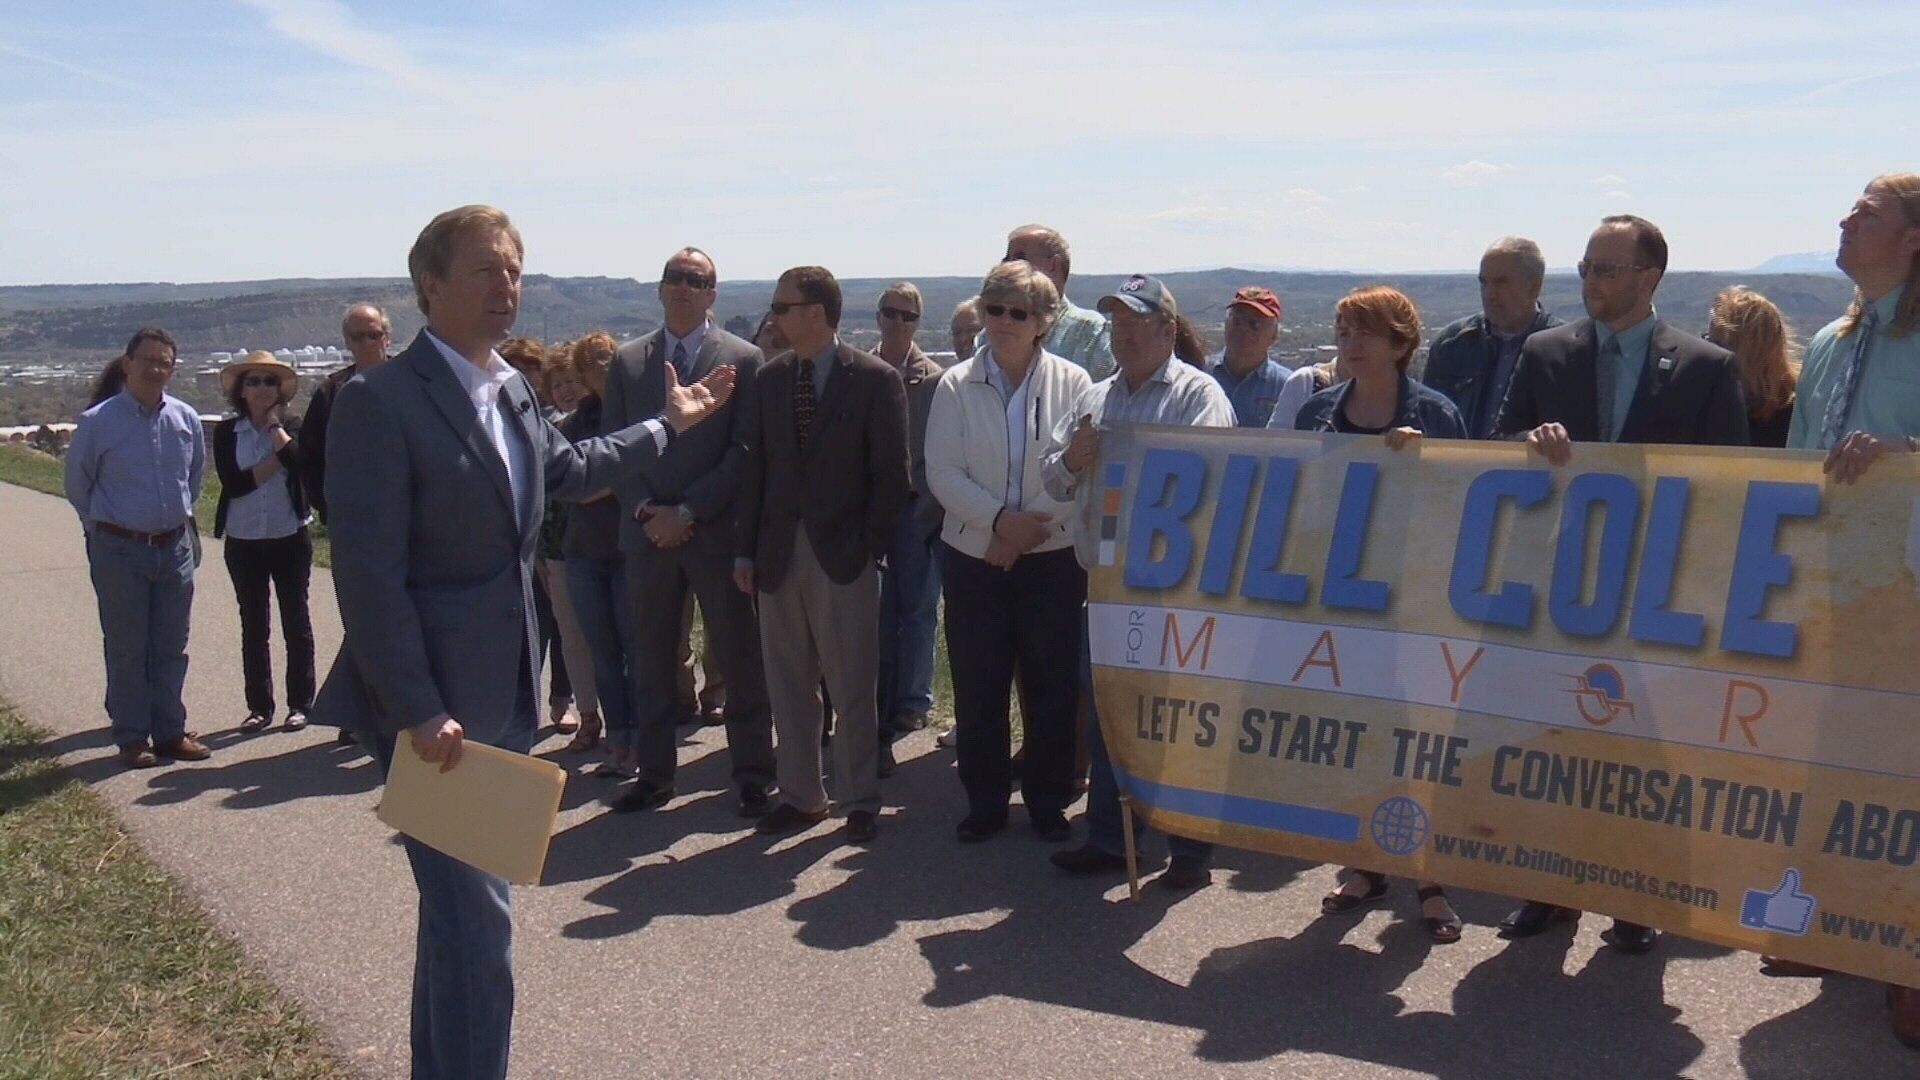 Bill Cole announces he is running for mayor of Billings.